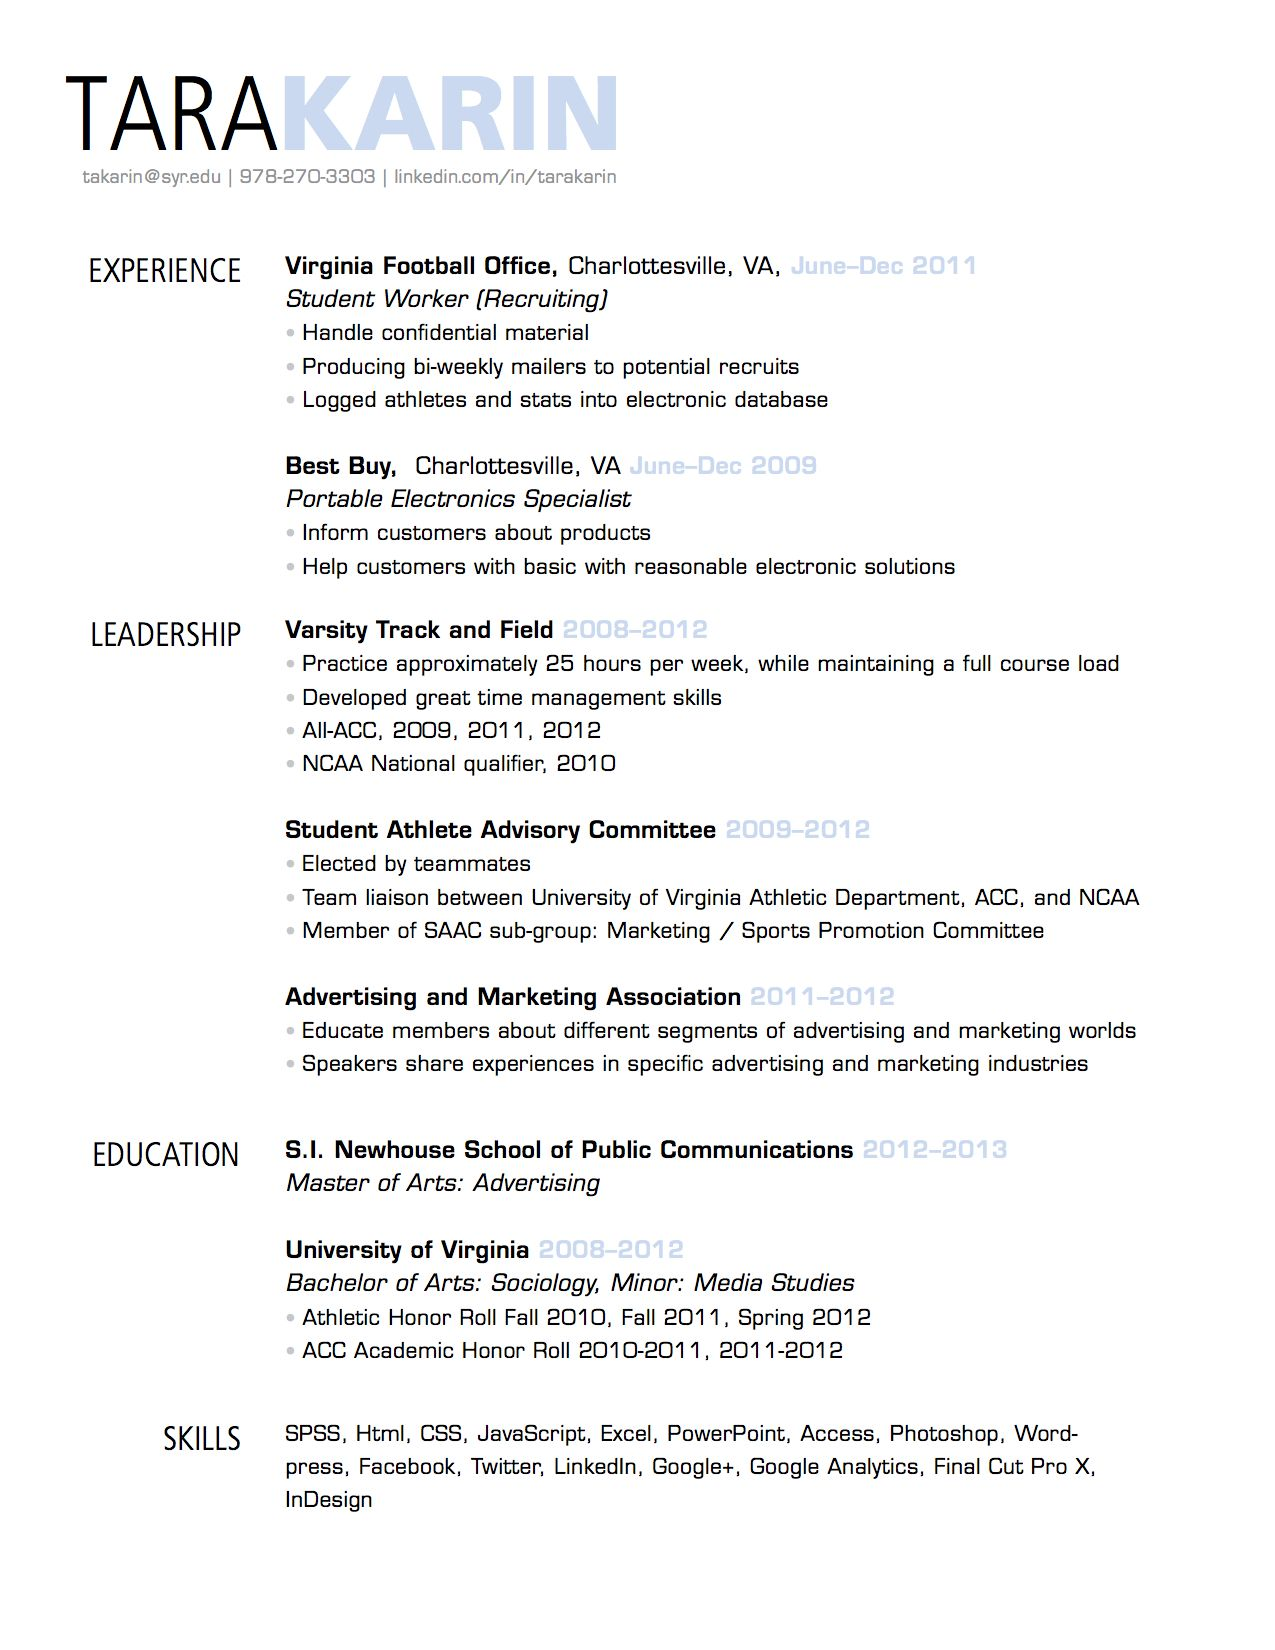 Resume Gra617 Basic Resume Job Resume Examples Best Resume Template